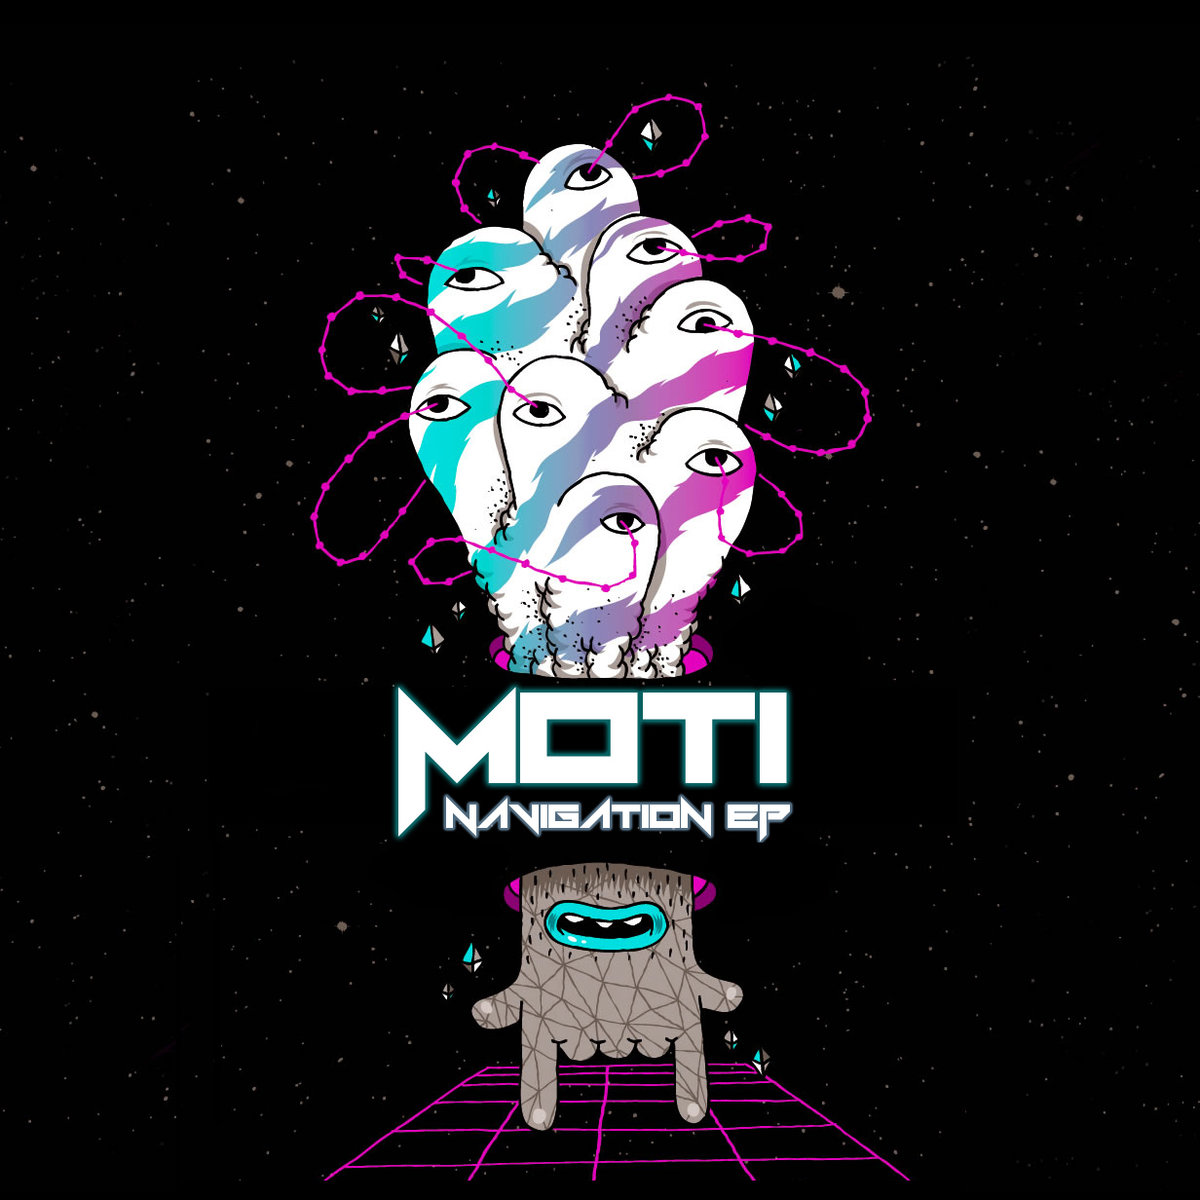 Le Moti - To The Ones We Roll With @ 'Navigation' album (bass, electronic)